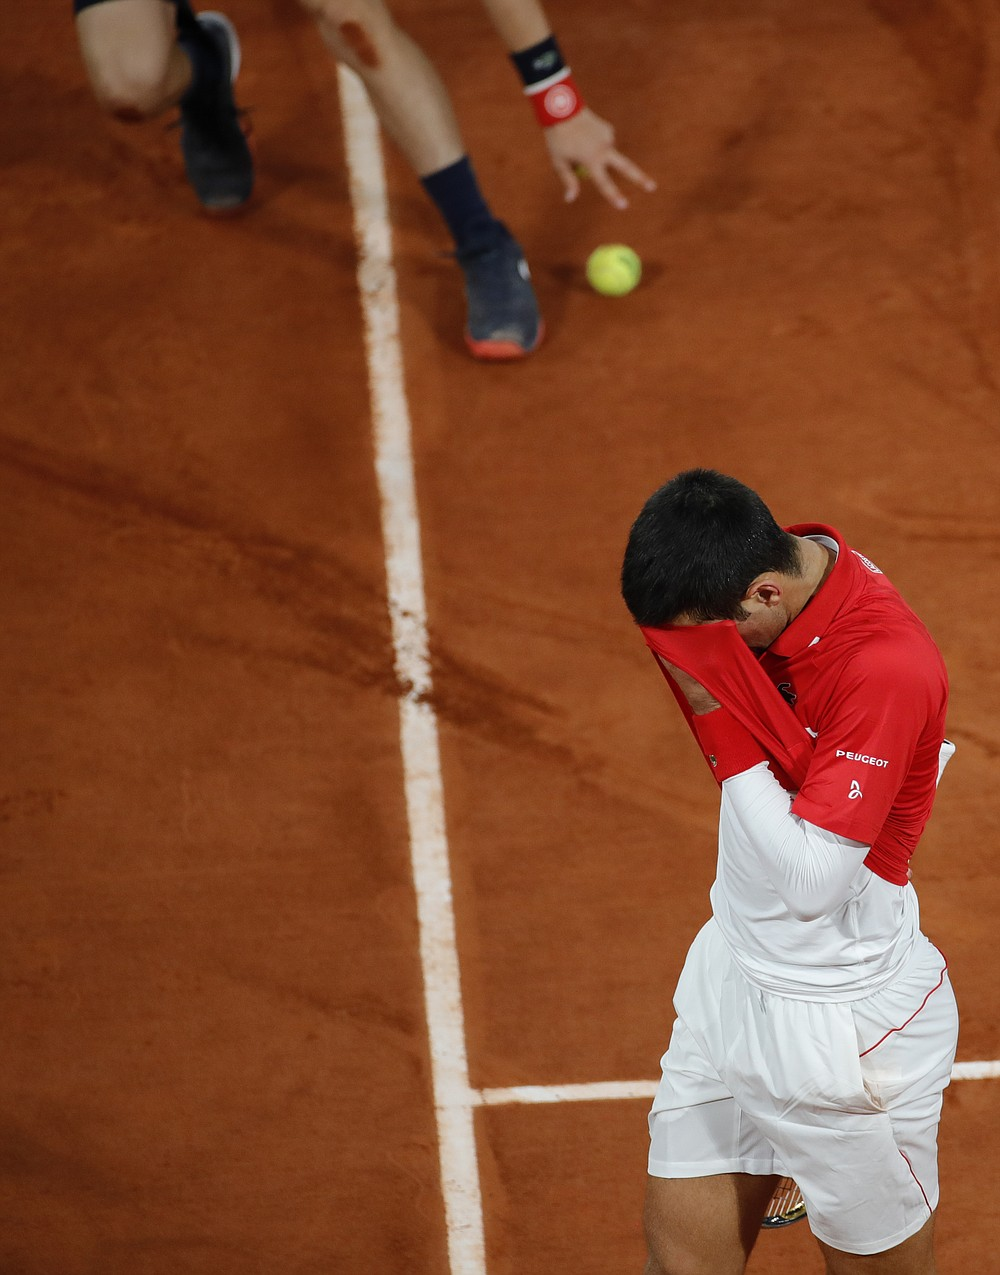 Serbia's Novak Djokovic reacts after missing a shot against Spain's Rafael Nadal in the final match of the French Open tennis tournament at the Roland Garros stadium in Paris, France, Sunday, Oct. 11, 2020. (AP Photo/Christophe Ena)